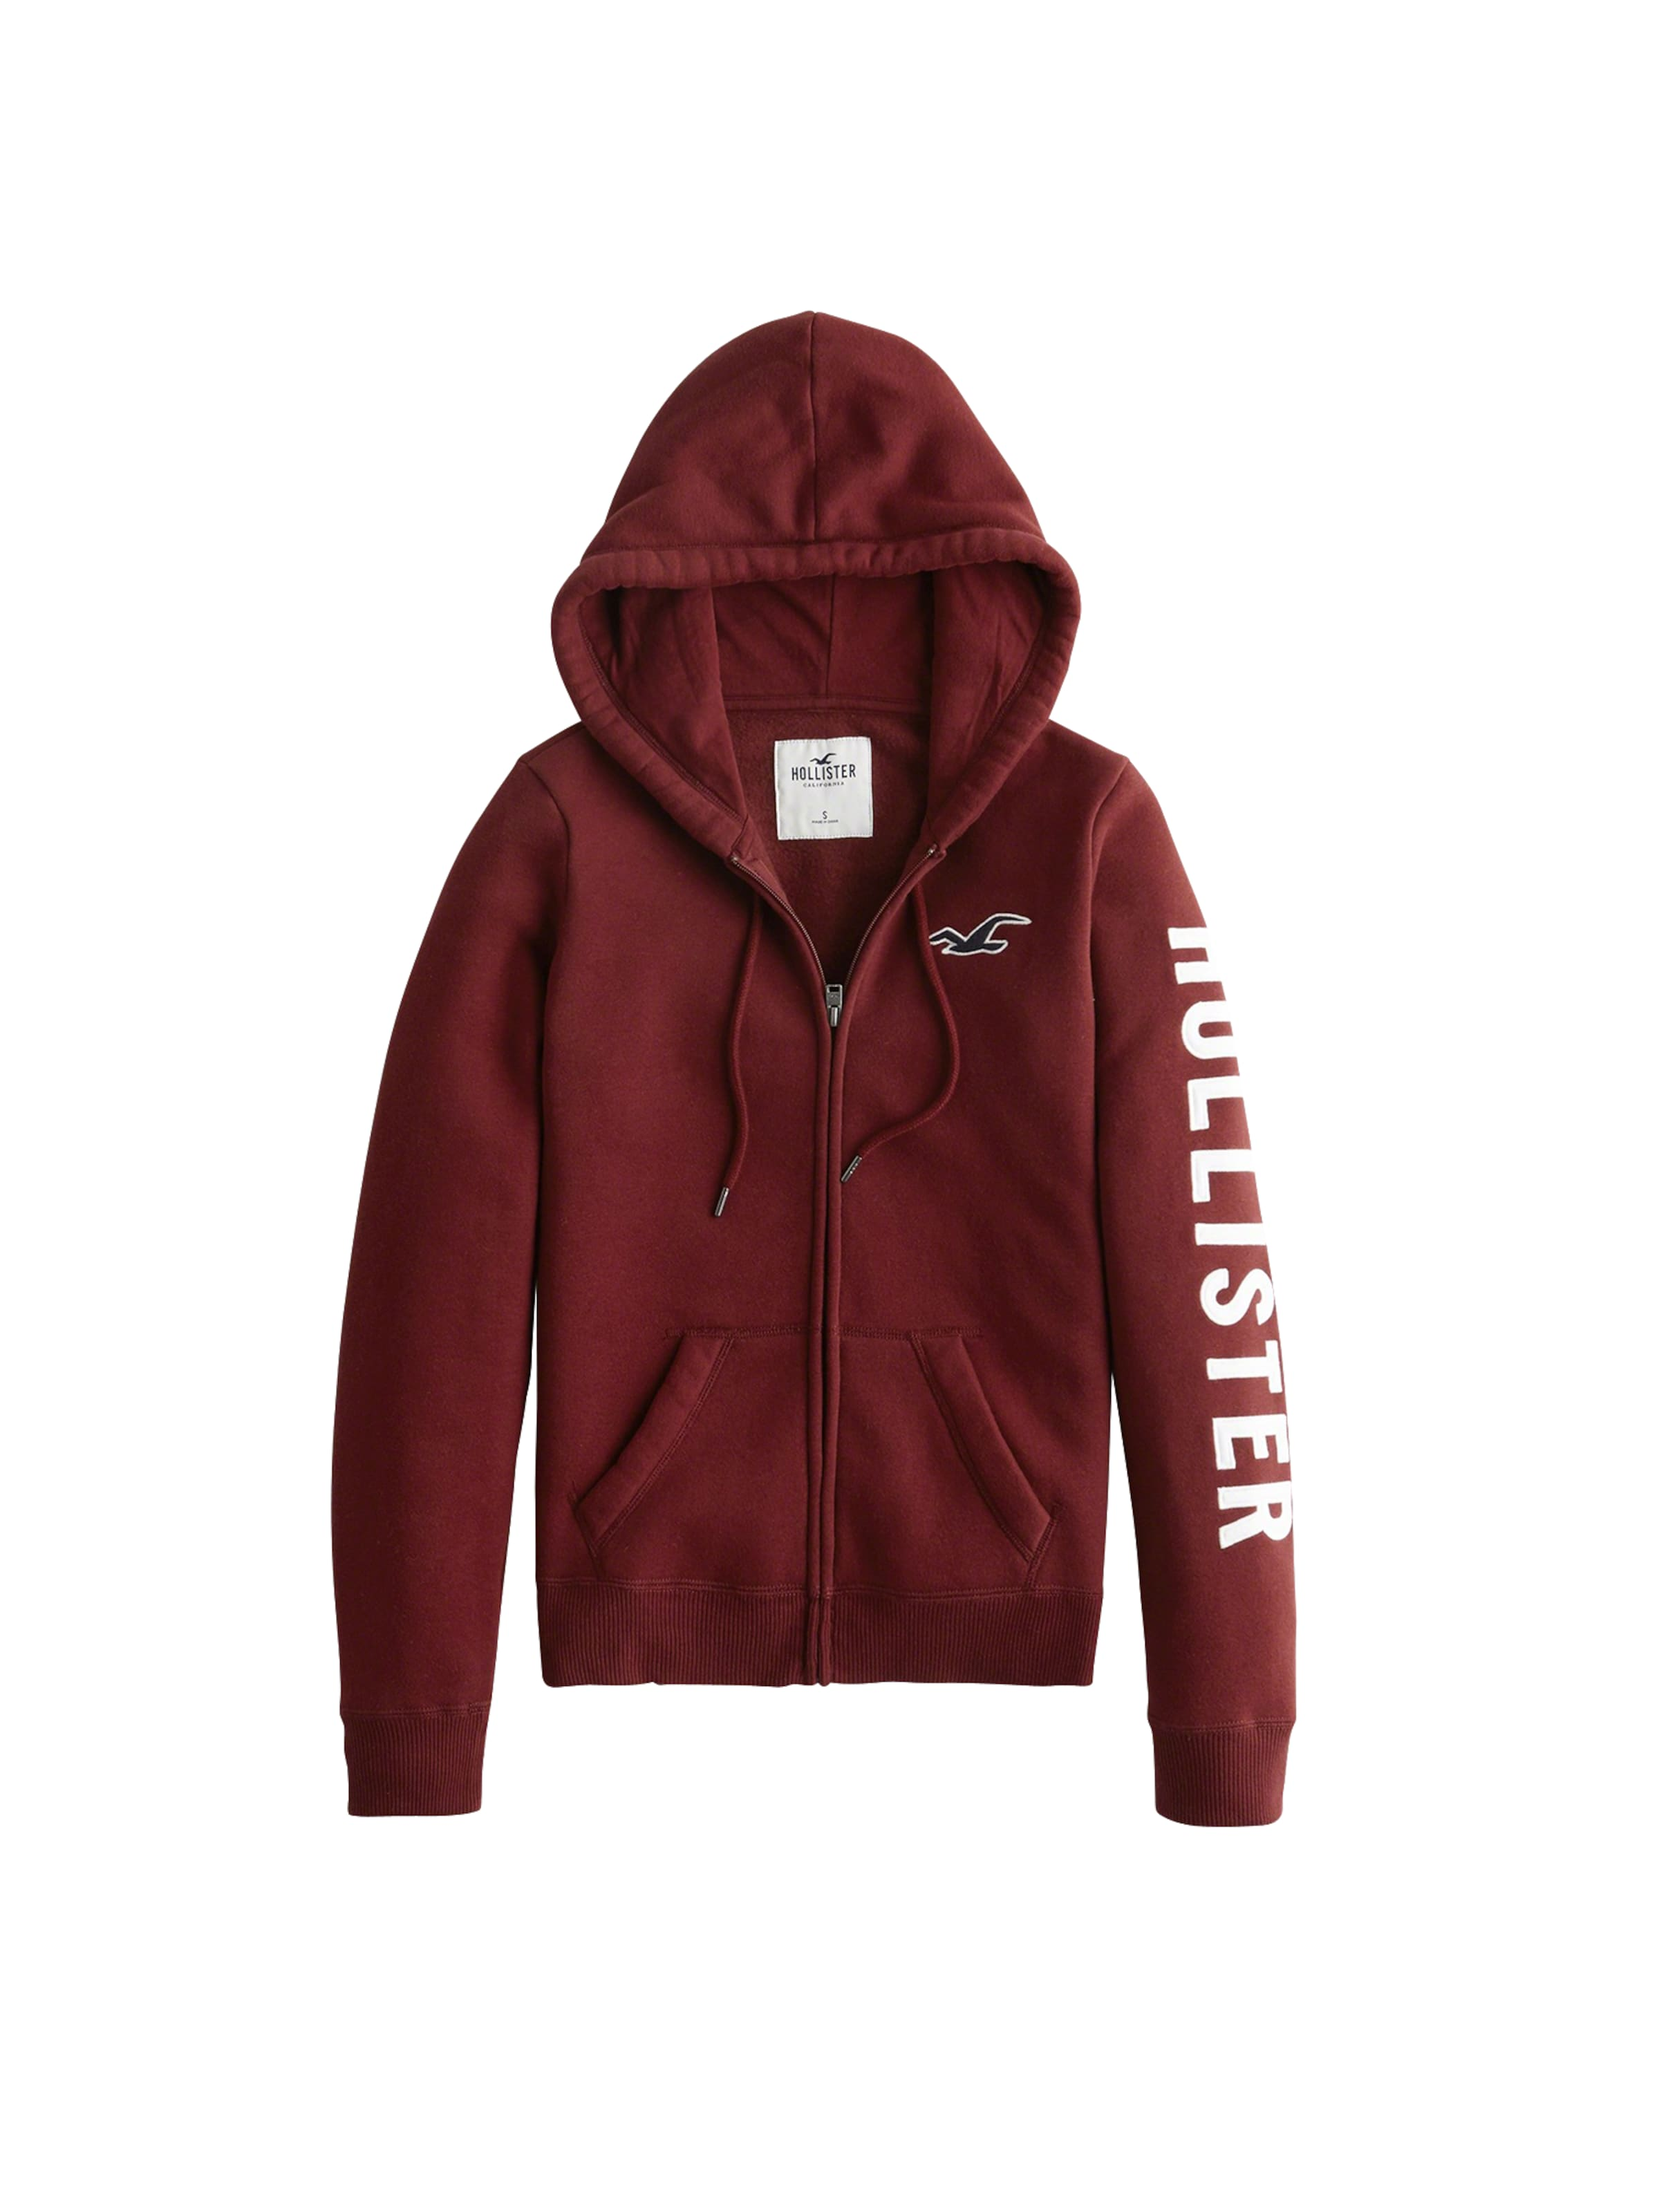 Hollister De Bourgogne Survêtement Fz' 'timeless Veste Core Logo Tech En 9D2HWIE